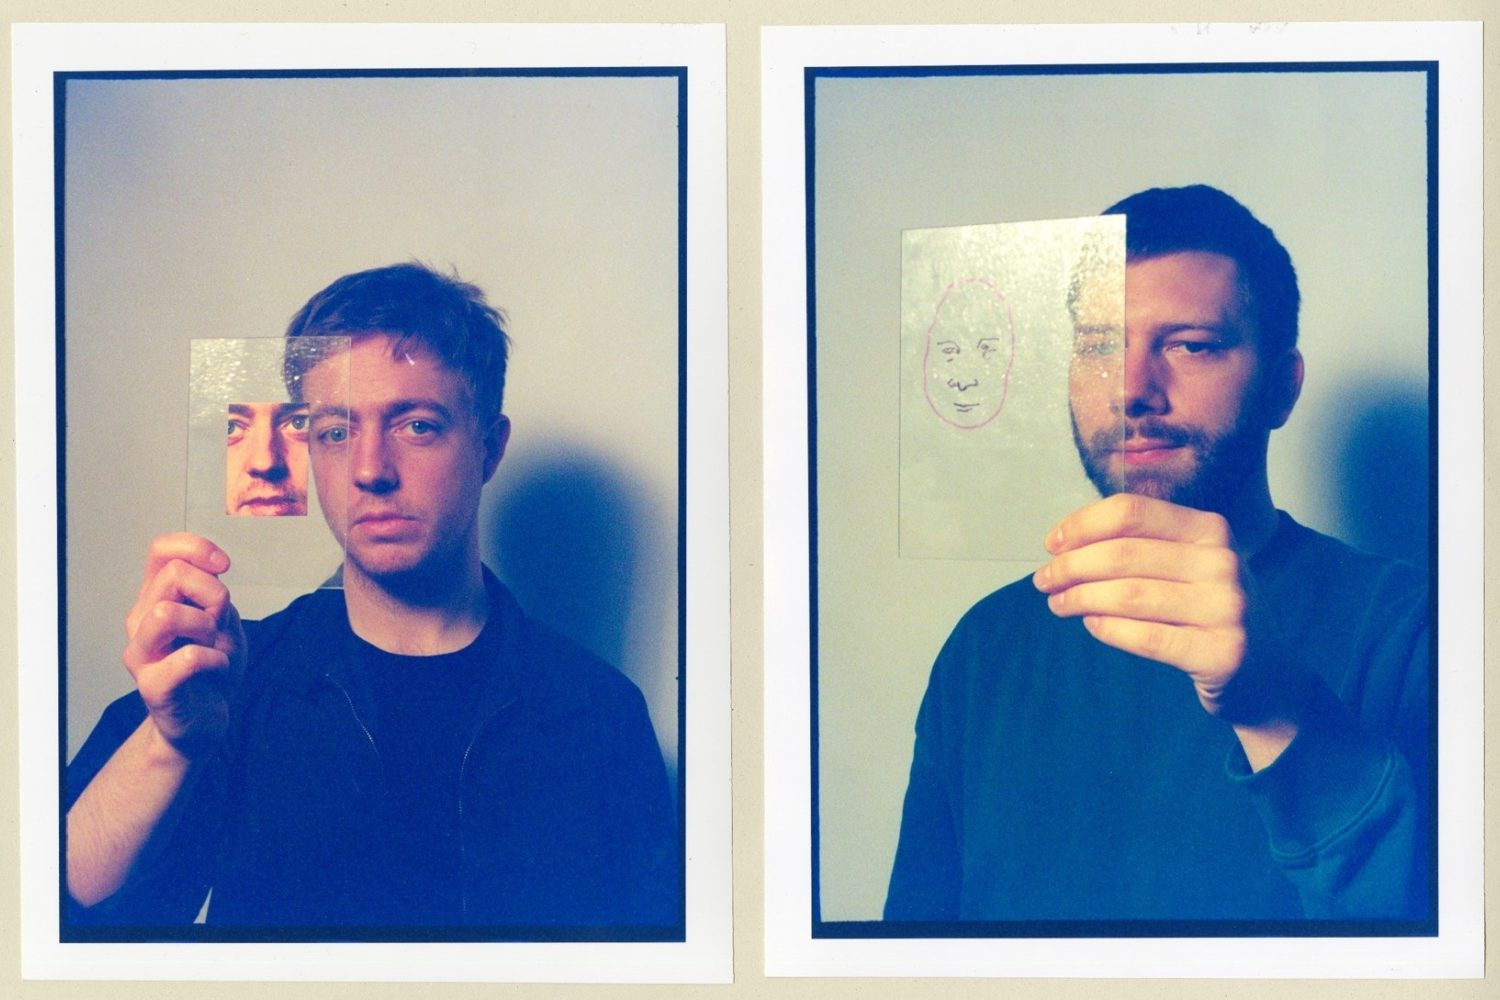 Mount Kimbie have announced new album 'Love What Survives'